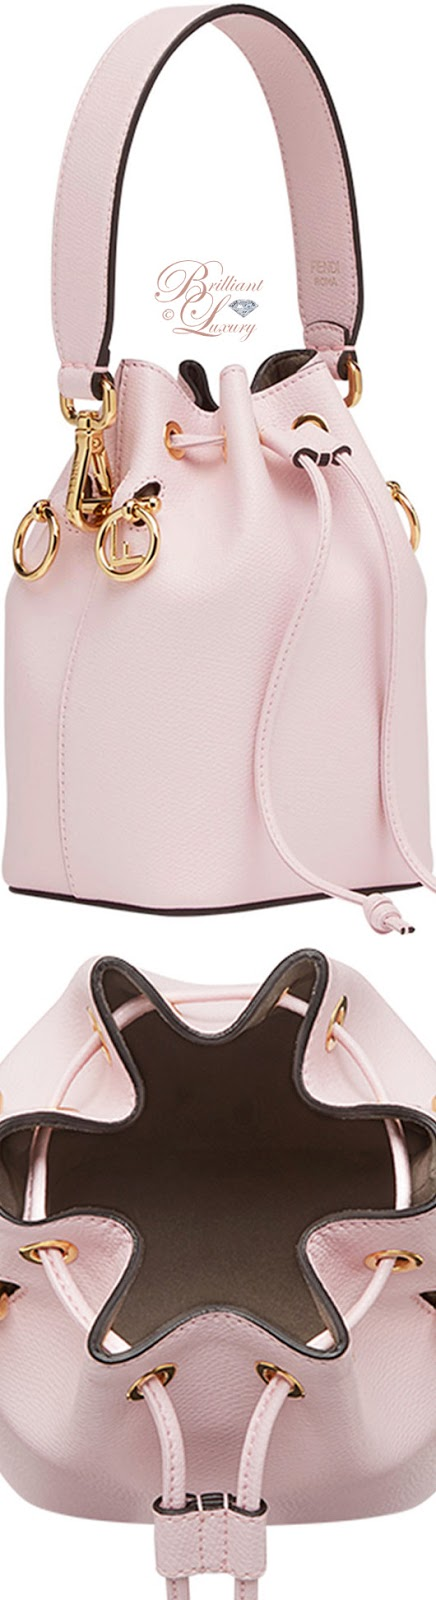 Brilliant Luxury ♦ Fendi pink bucket mini bag